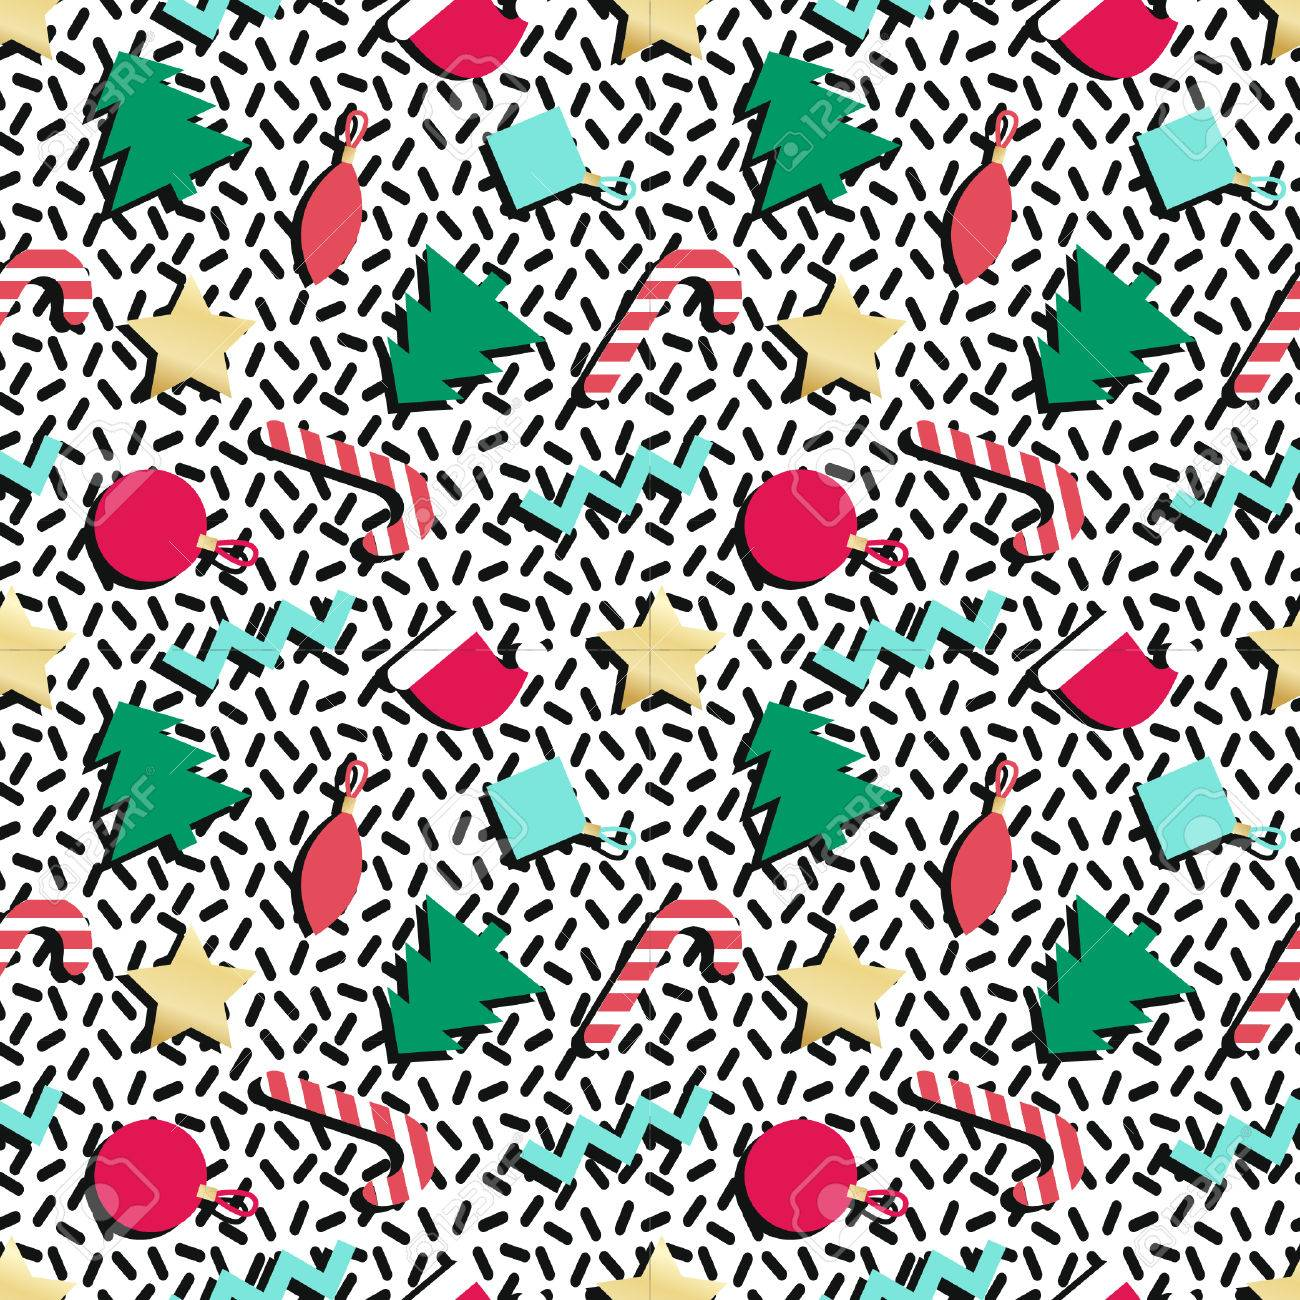 90s Christmas Background.Simple Winter Holiday Geometrical Seamless Pattern In Retro Comic